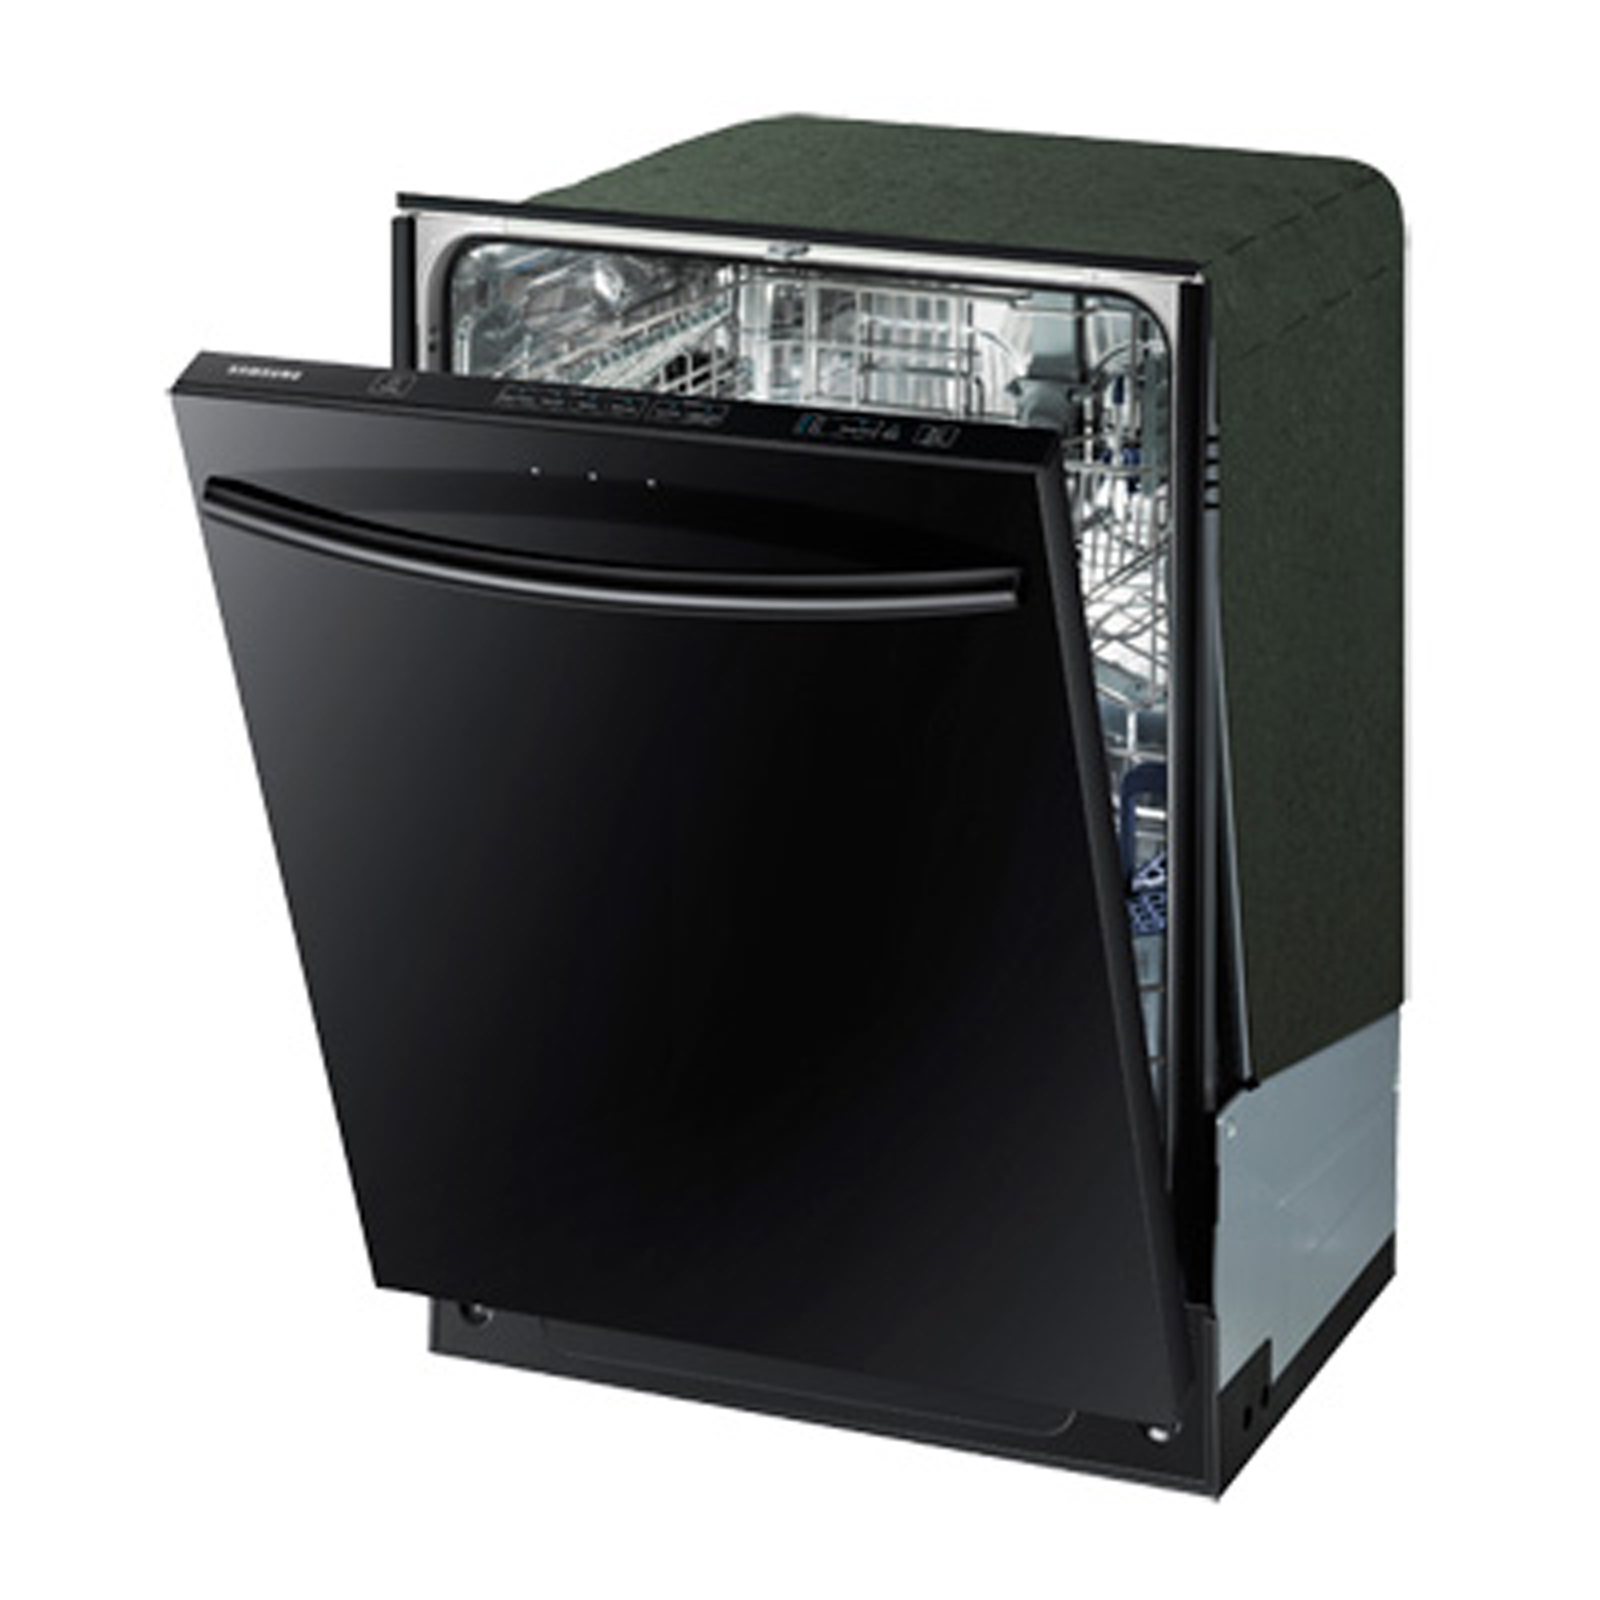 "Samsung 24"" Built-In Dishwasher w/ Stainless Steel Tub - Black"